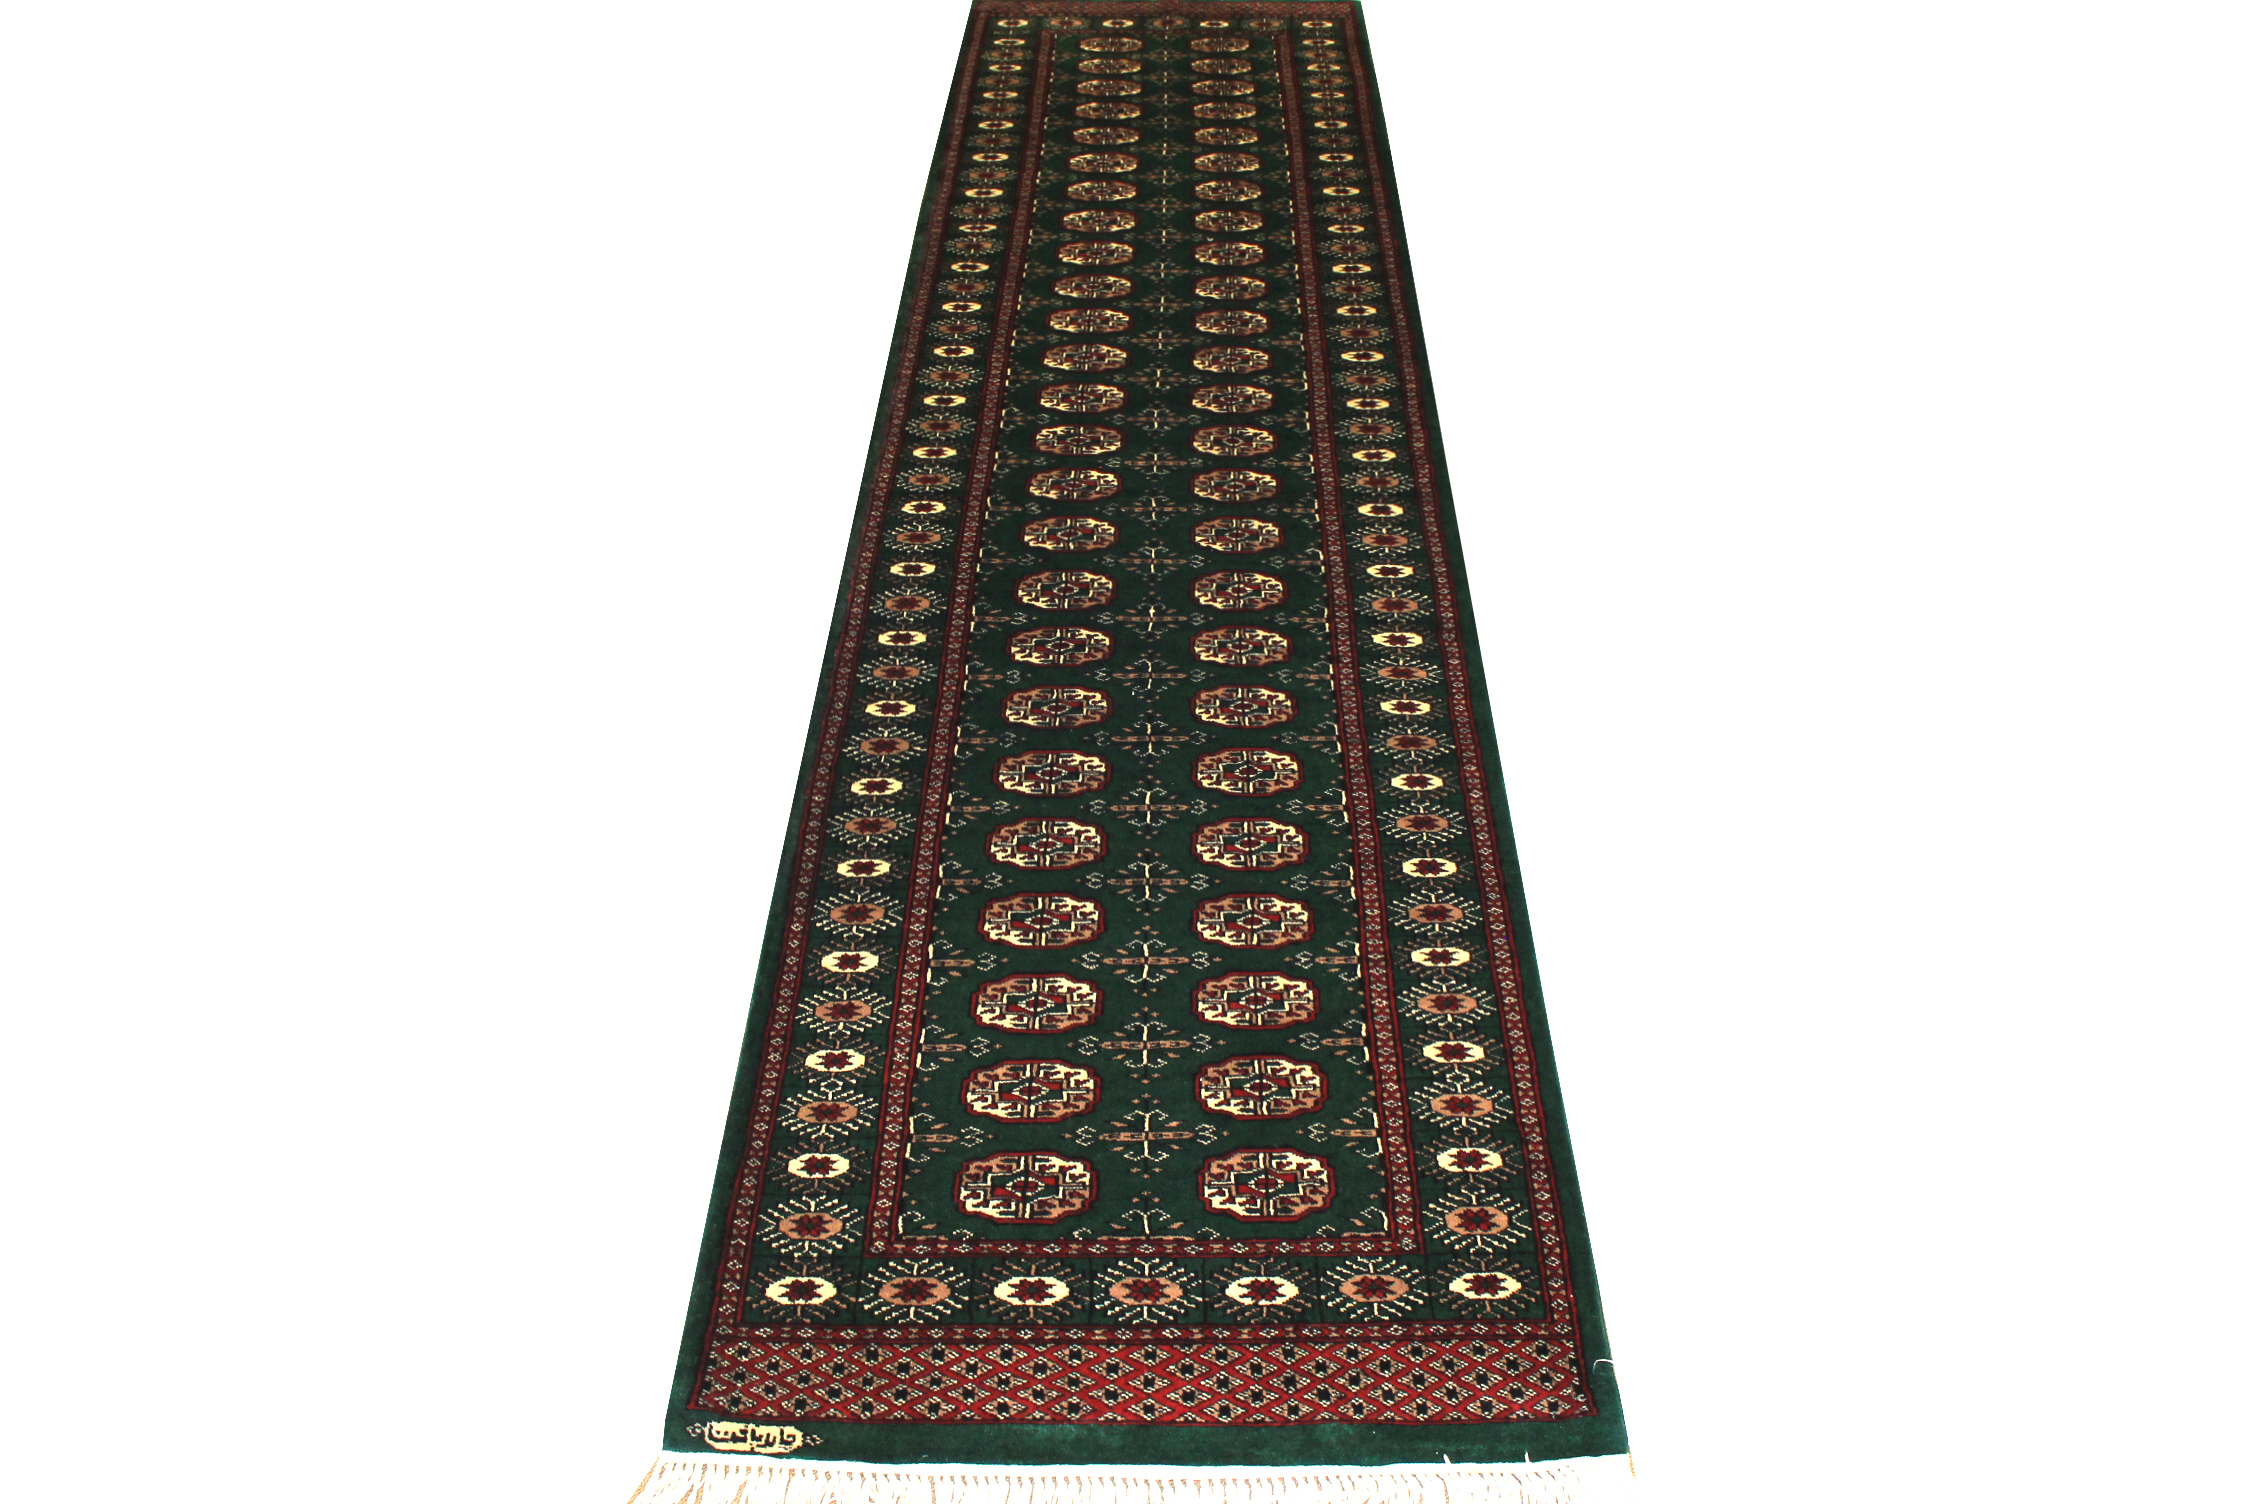 10 ft. Runner Bokhara Hand Knotted Wool Area Rug - MR19445